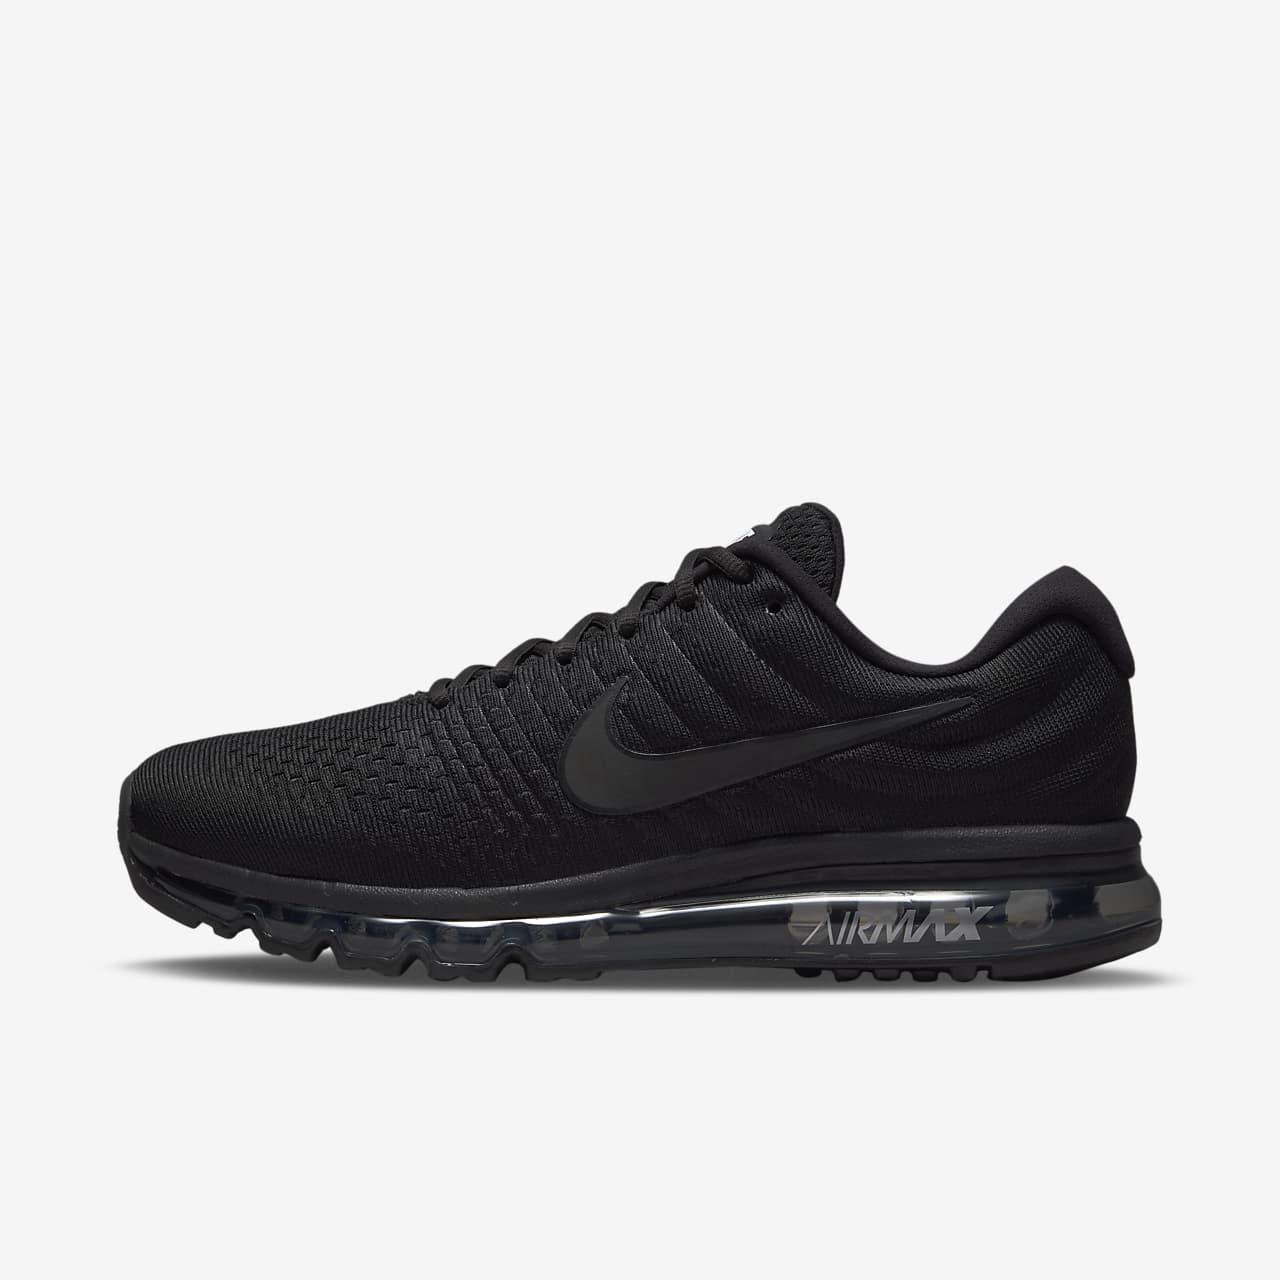 outlet store 252aa e8270 ... Chaussure Nike Air Max 2017 pour Homme